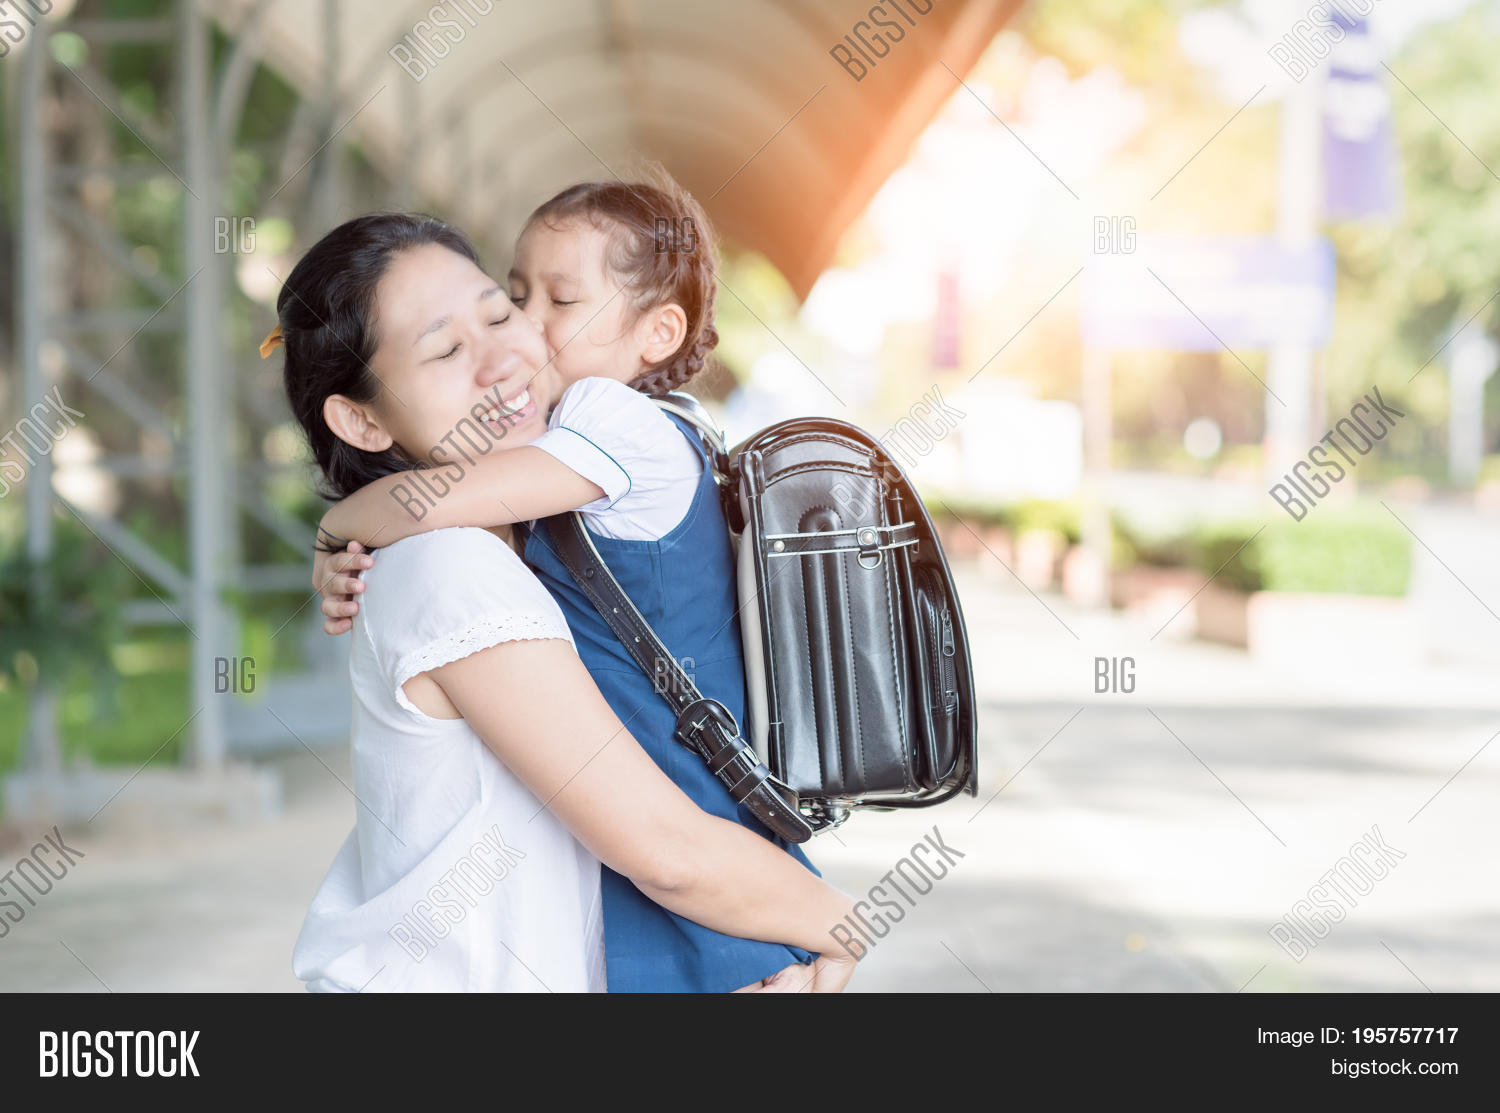 mother hug kiss cute girl student image & photo | bigstock